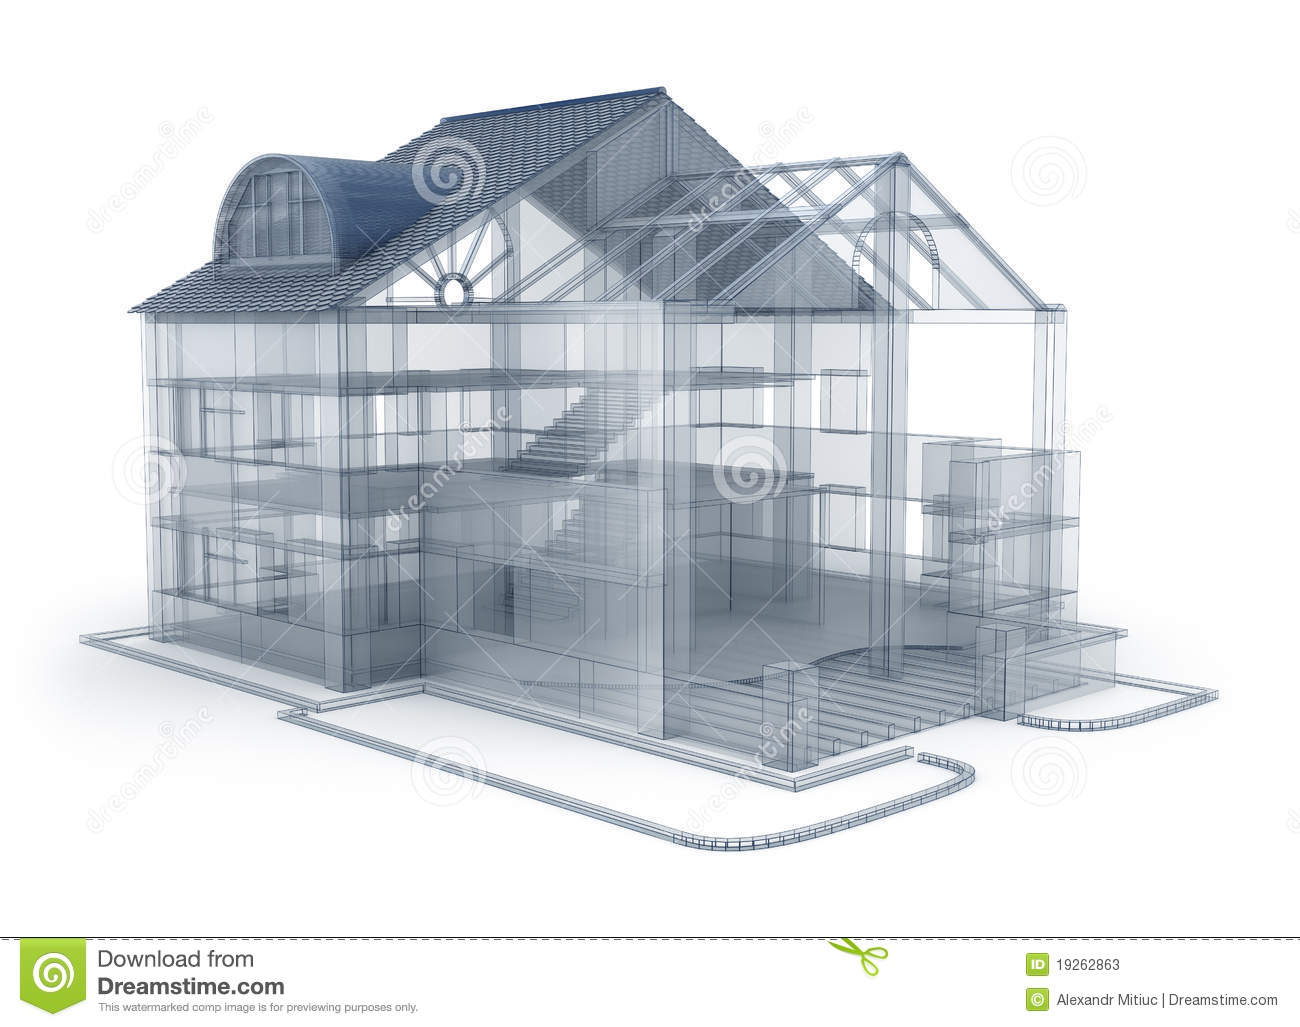 Maison de plan d 39 architecture illustration stock image for Architecture de plan libre